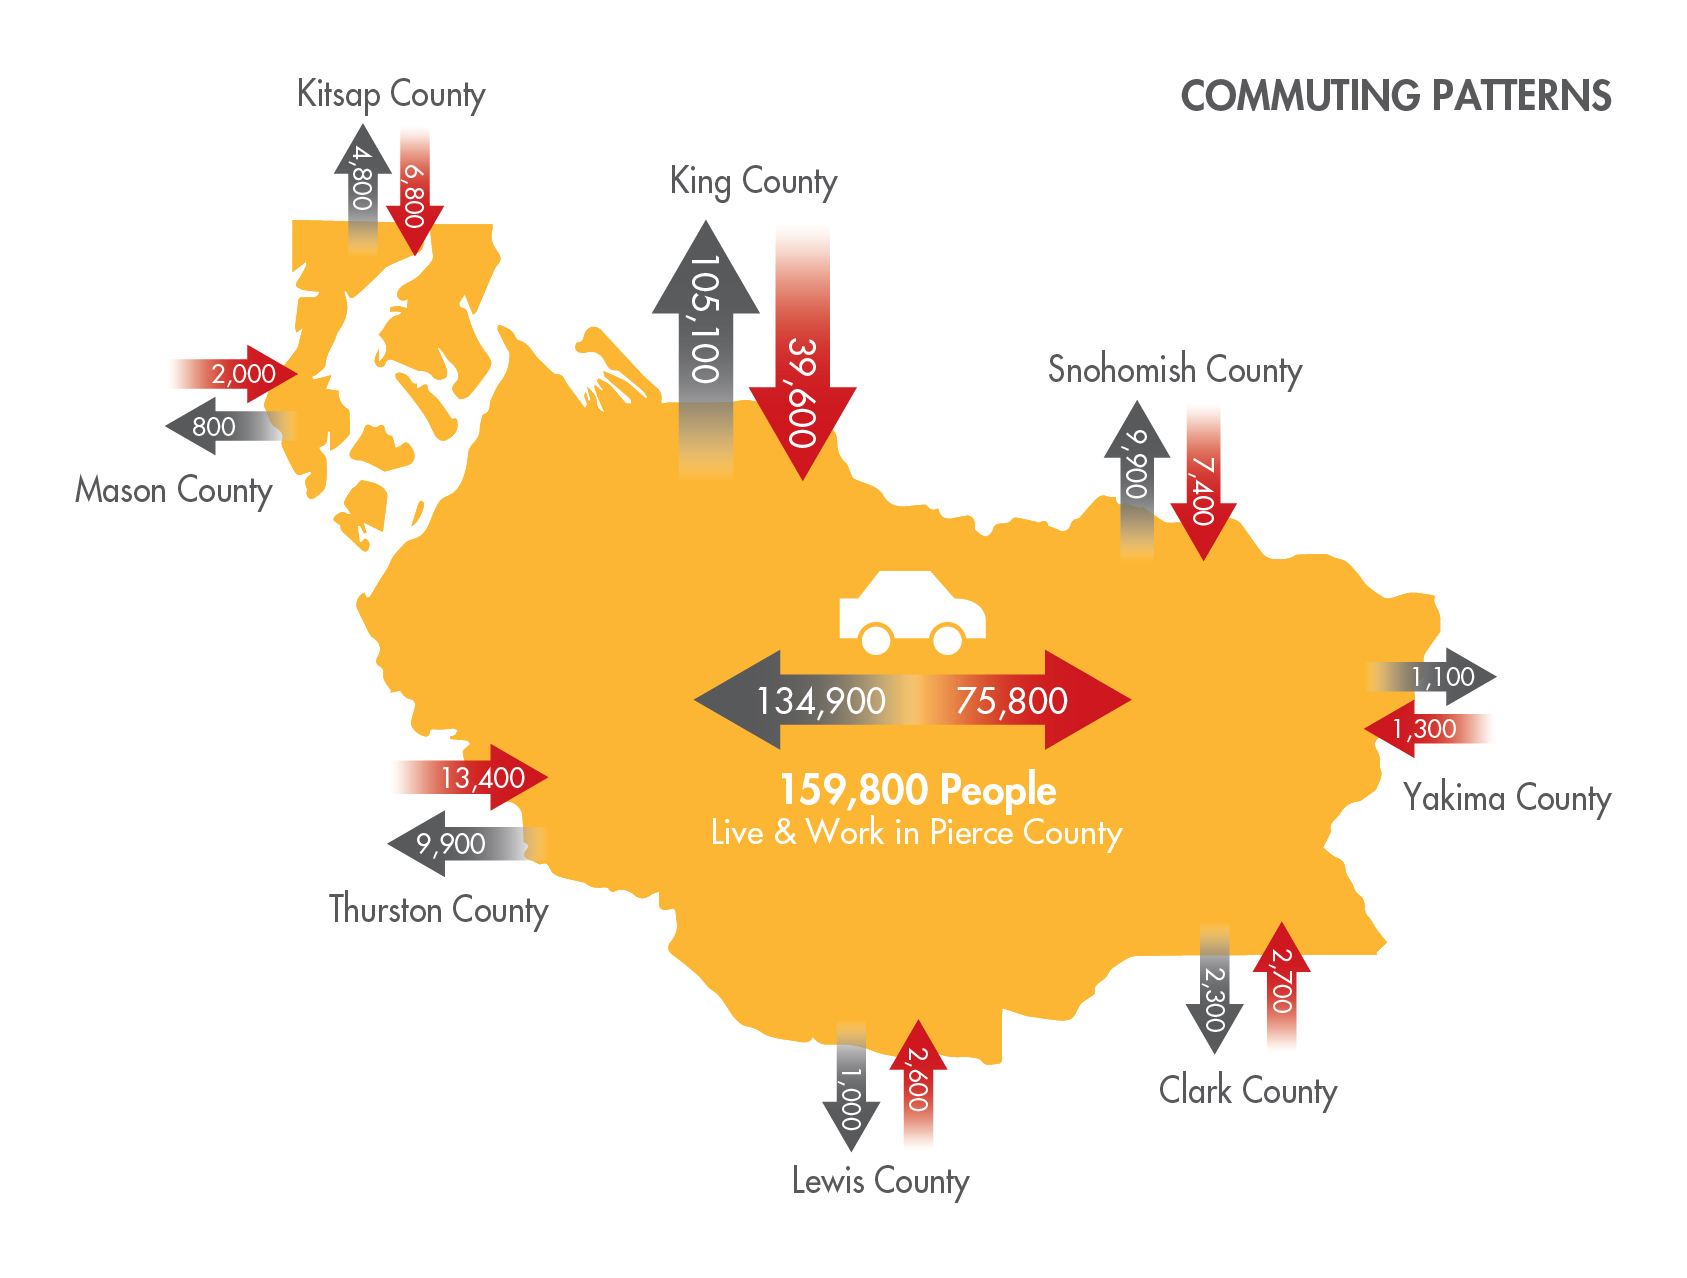 Commuting Patterns to and from Pierce County, mapped